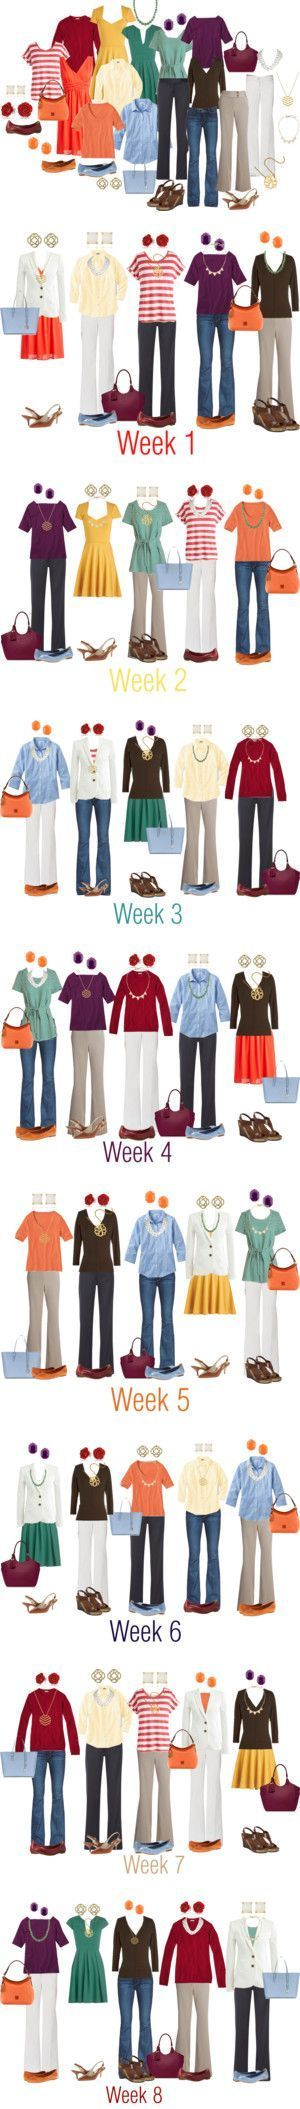 Primary Colors Capsule by kristin727 on Polyvore featuring Dooney & Bourke, Tory Burch, Michael Kors, Bea & Dot, STELLA McCARTNEY, Paige Denim, Rafaella, MICHAEL Michael Kors, Miz Mooz and Brn. Here's my travel wardrobe for 10 days in Japan: http://www.